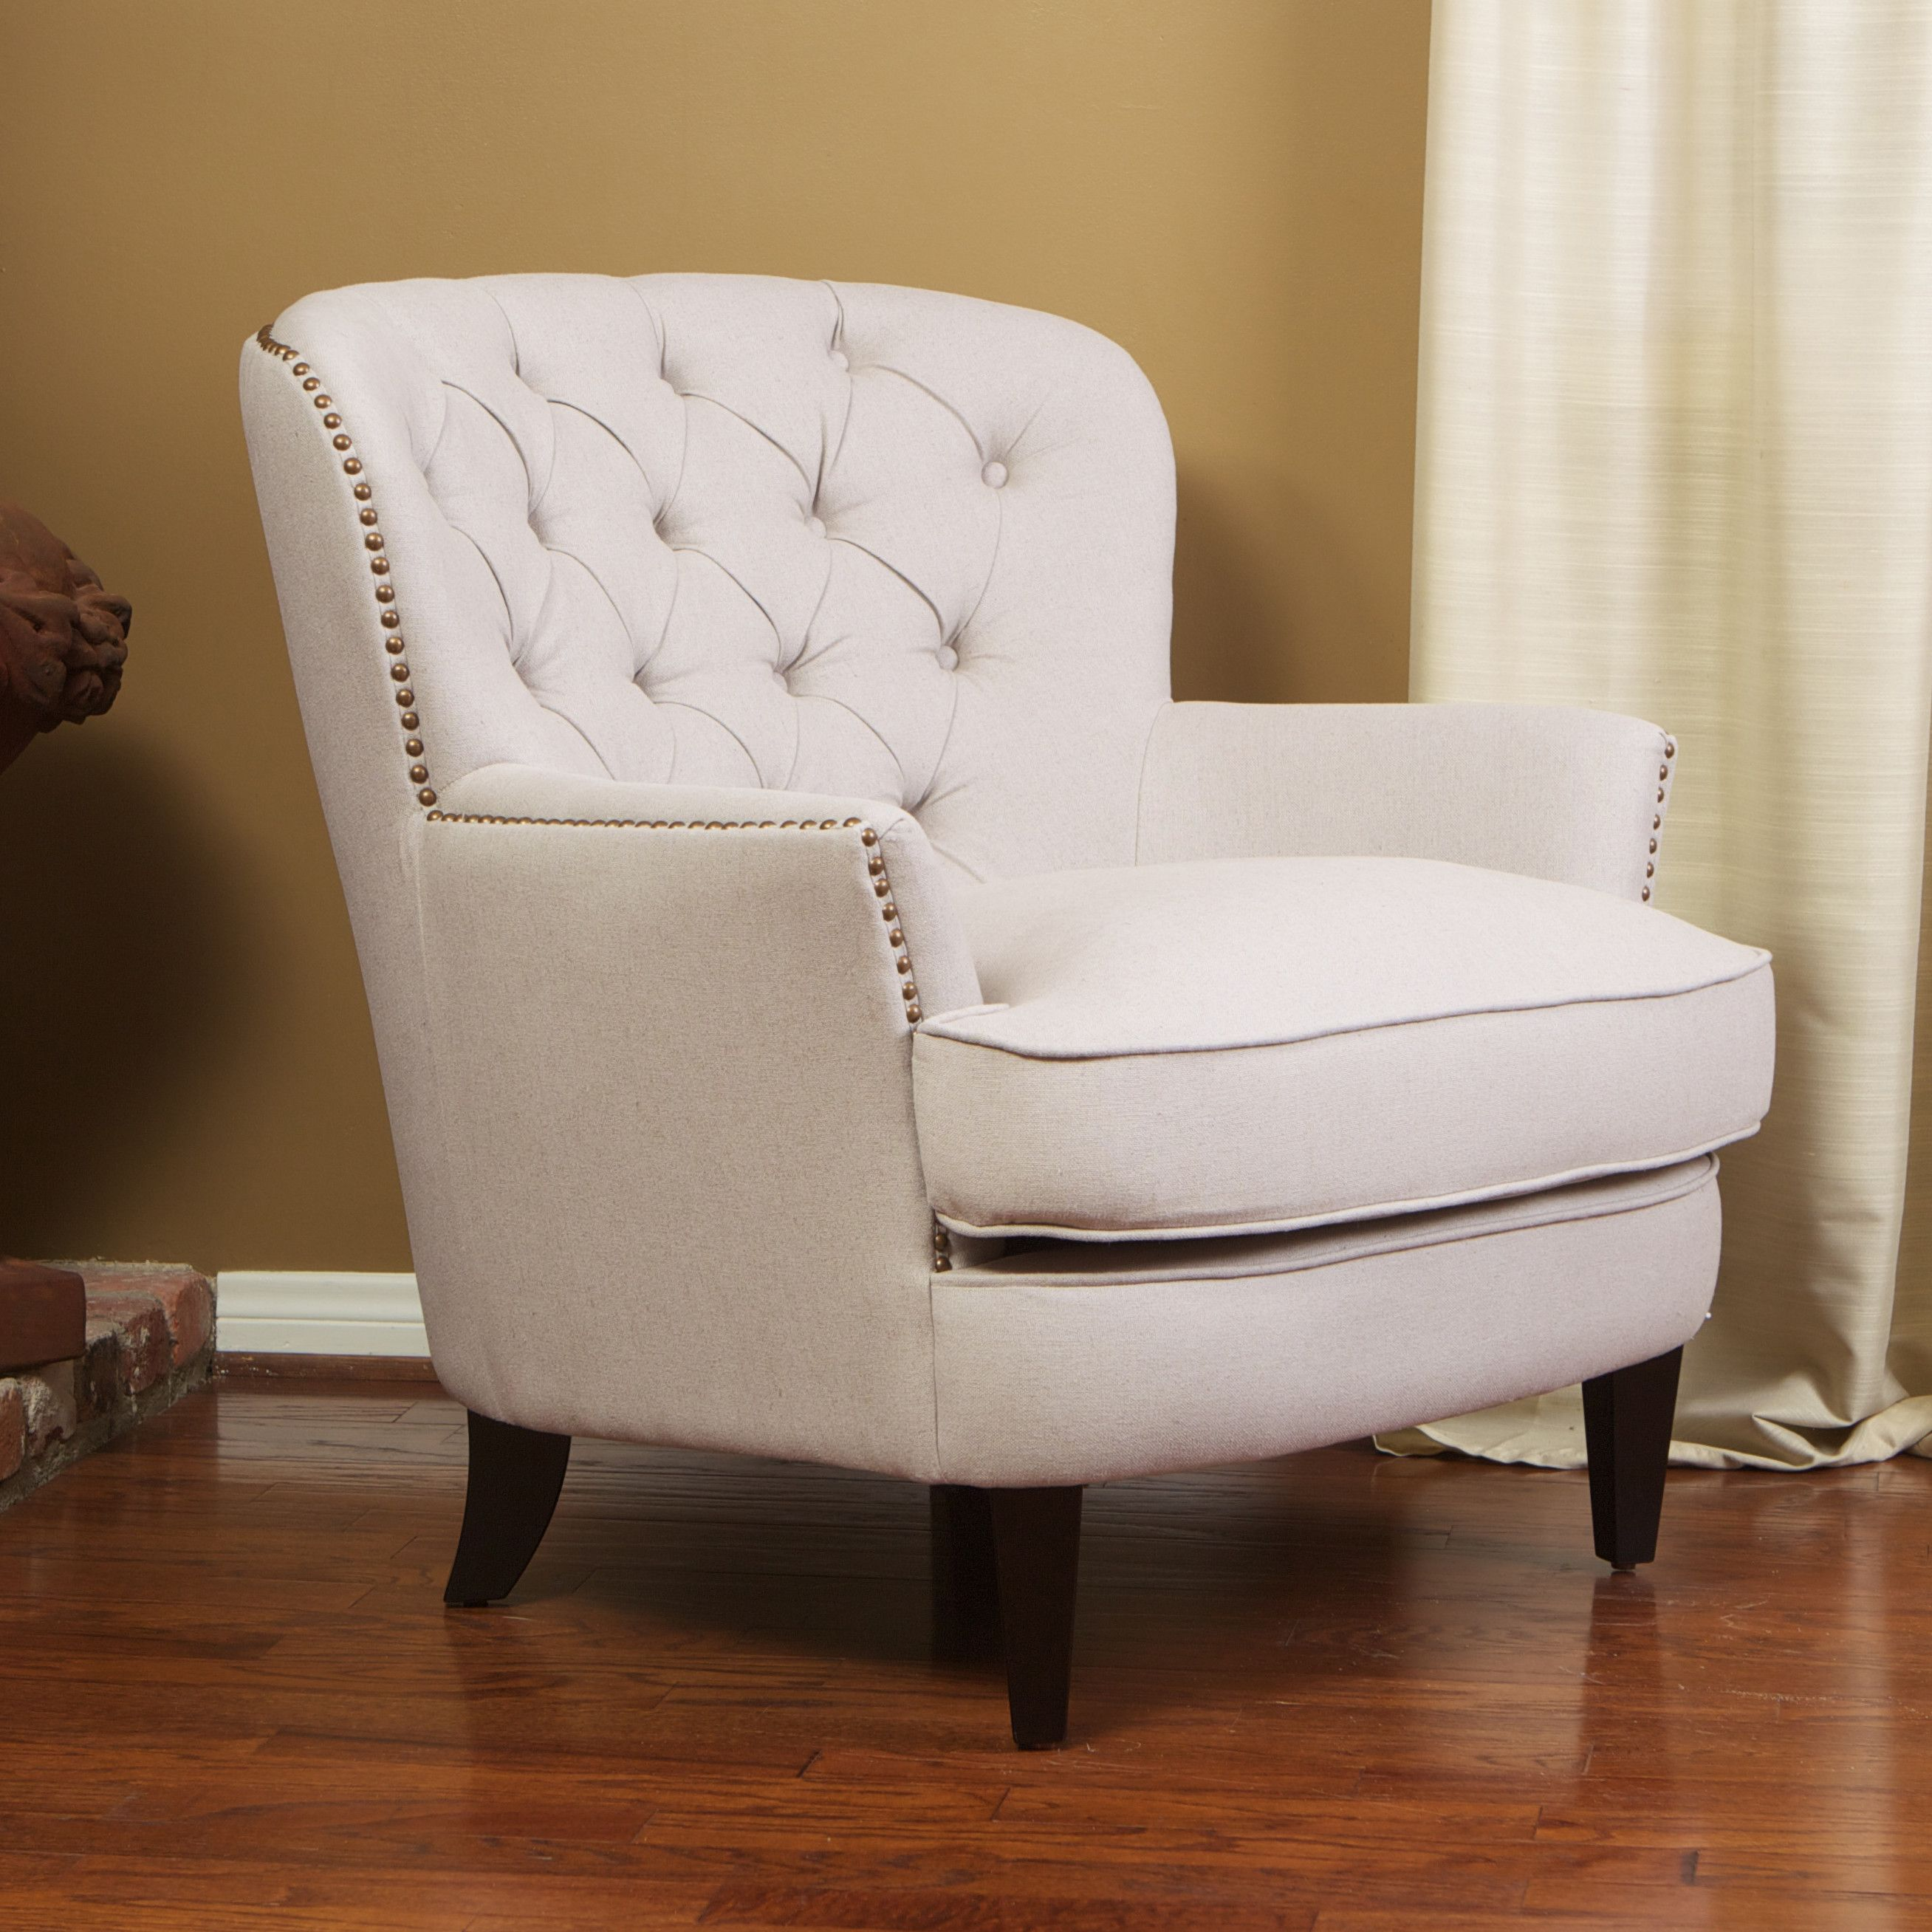 Fairmont Park Tufted Armchair & Reviews Wayfair UK